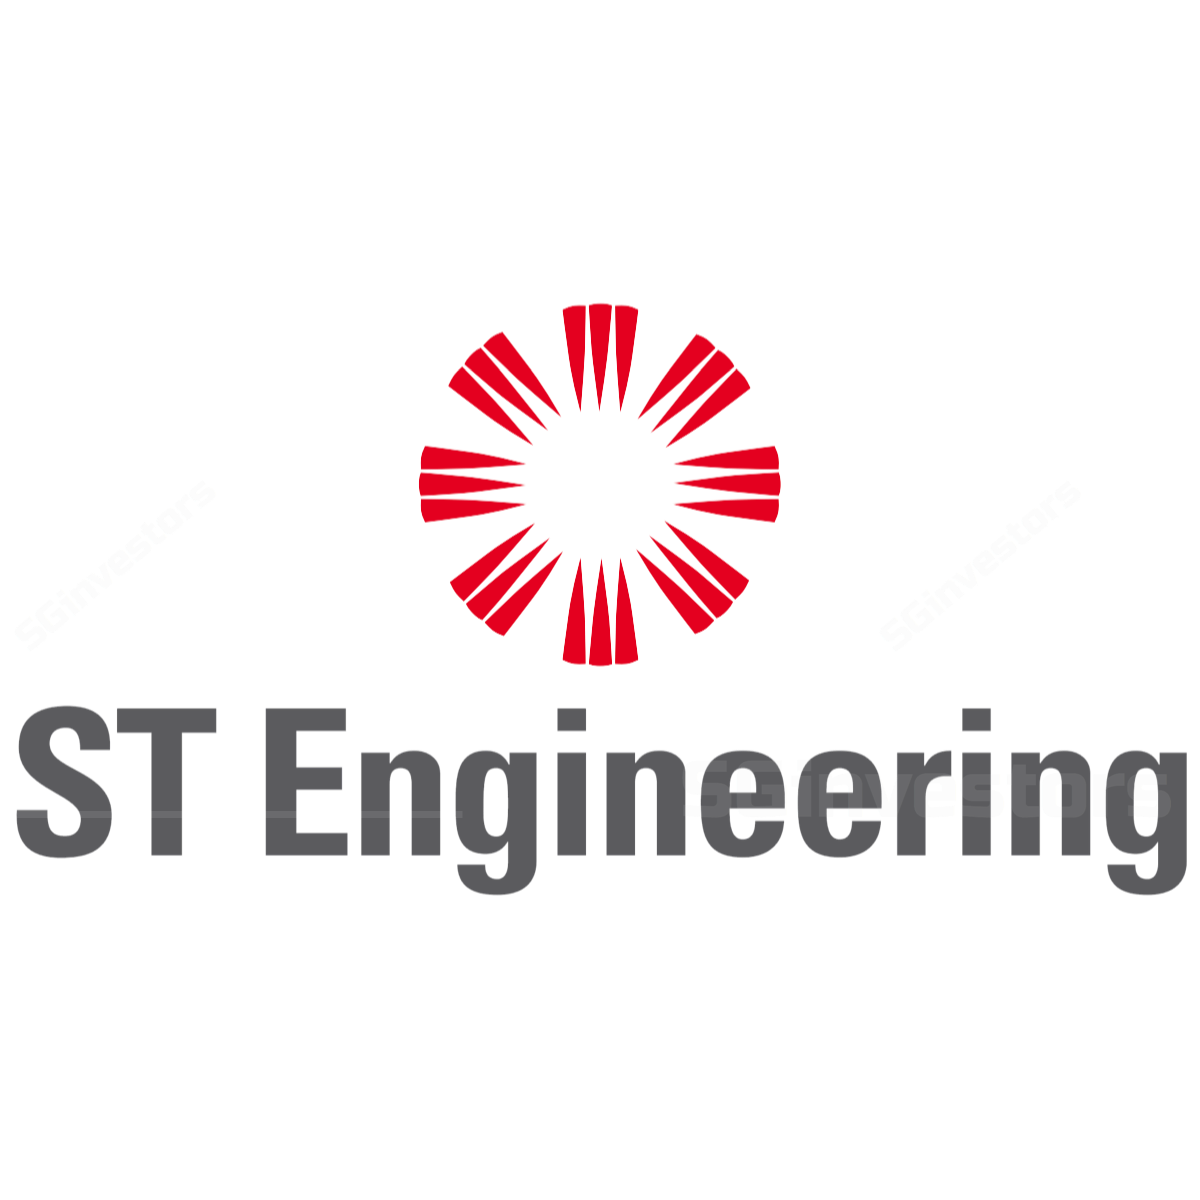 ST Engineering - DBS Vickers 2017-08-14: Earnings Miss Creates Profit Taking Opportunity